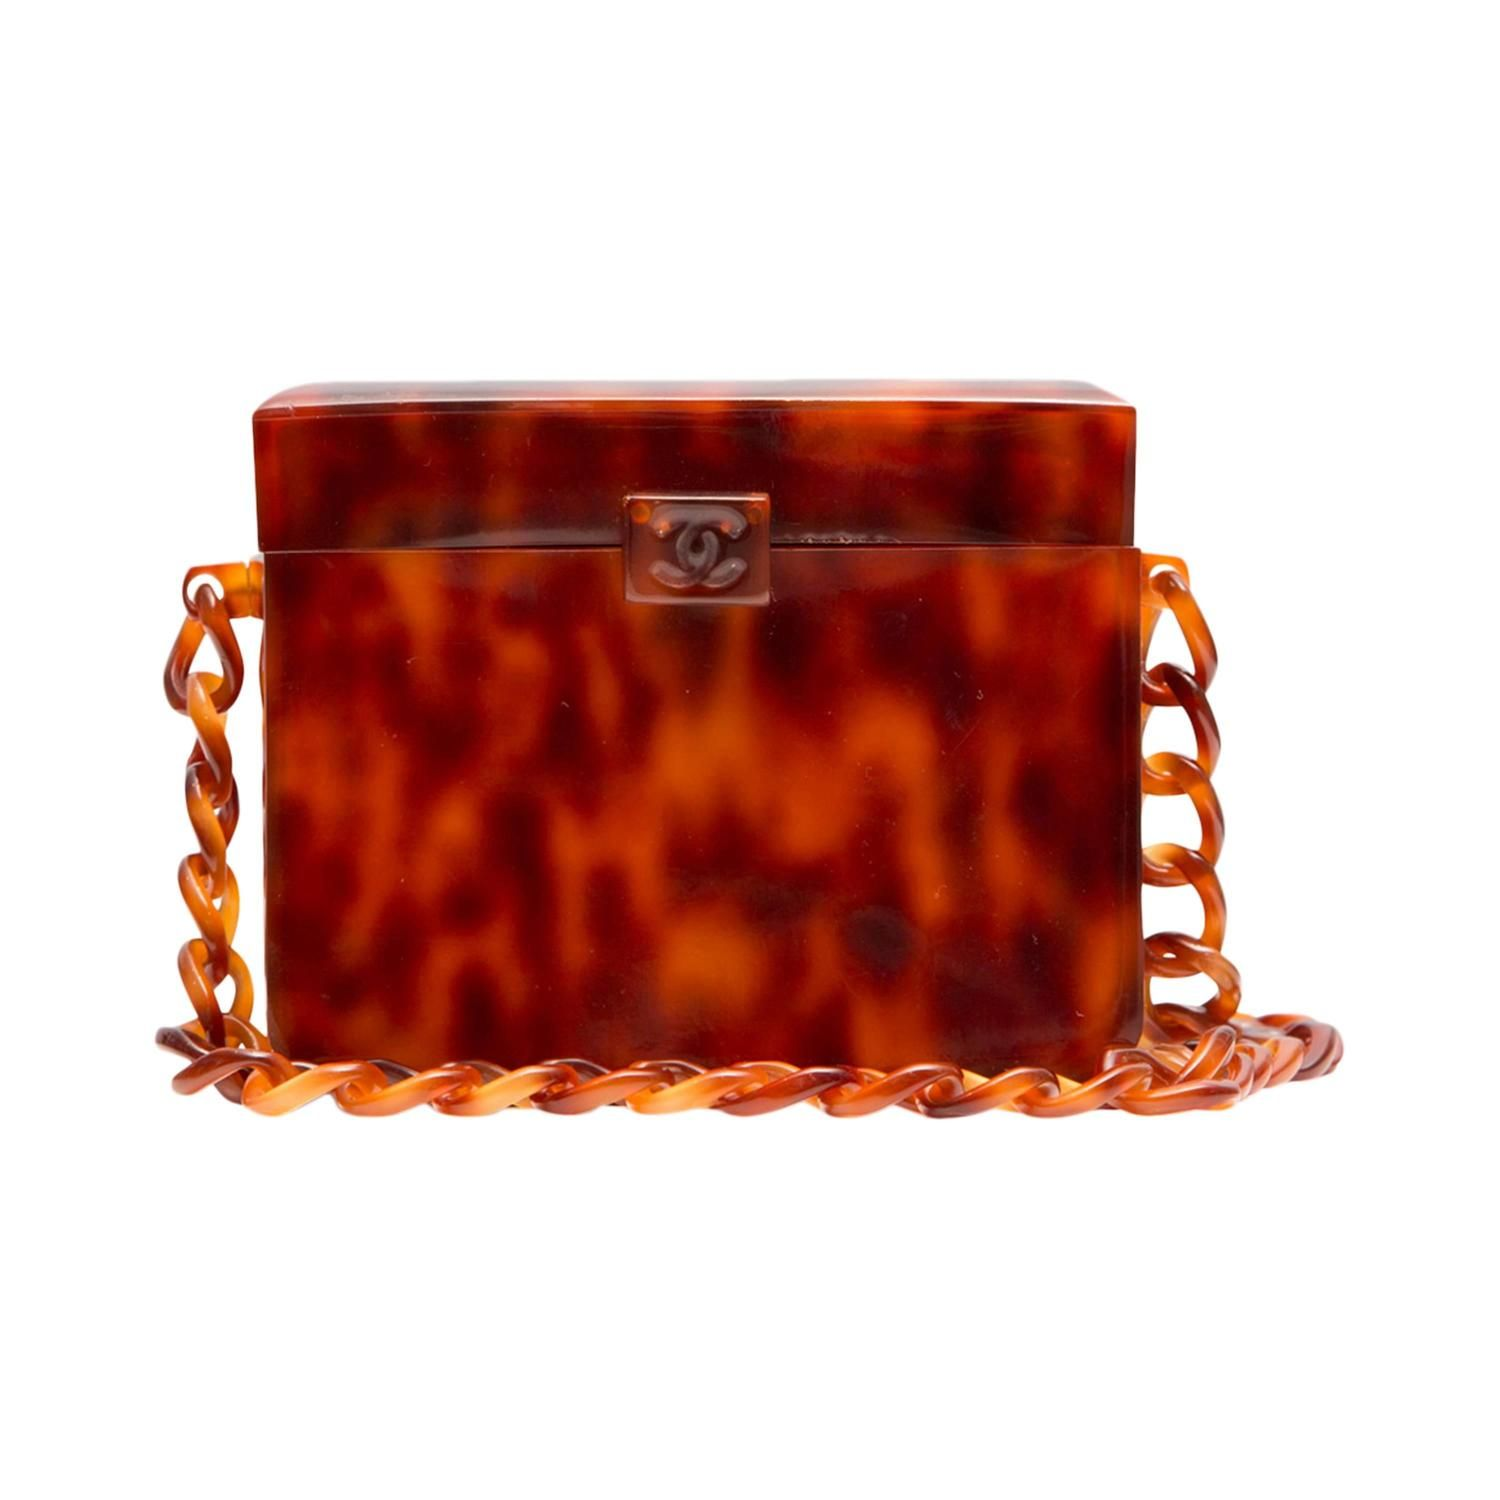 Chanel Vintage Tortoiseshell Plexiglass Box Bag | From a collection of rare vintage evening bags and minaudi�res at https://www.1stdibs.com/fashion/handbags-purses-bags/evening-bags-minaudieres/